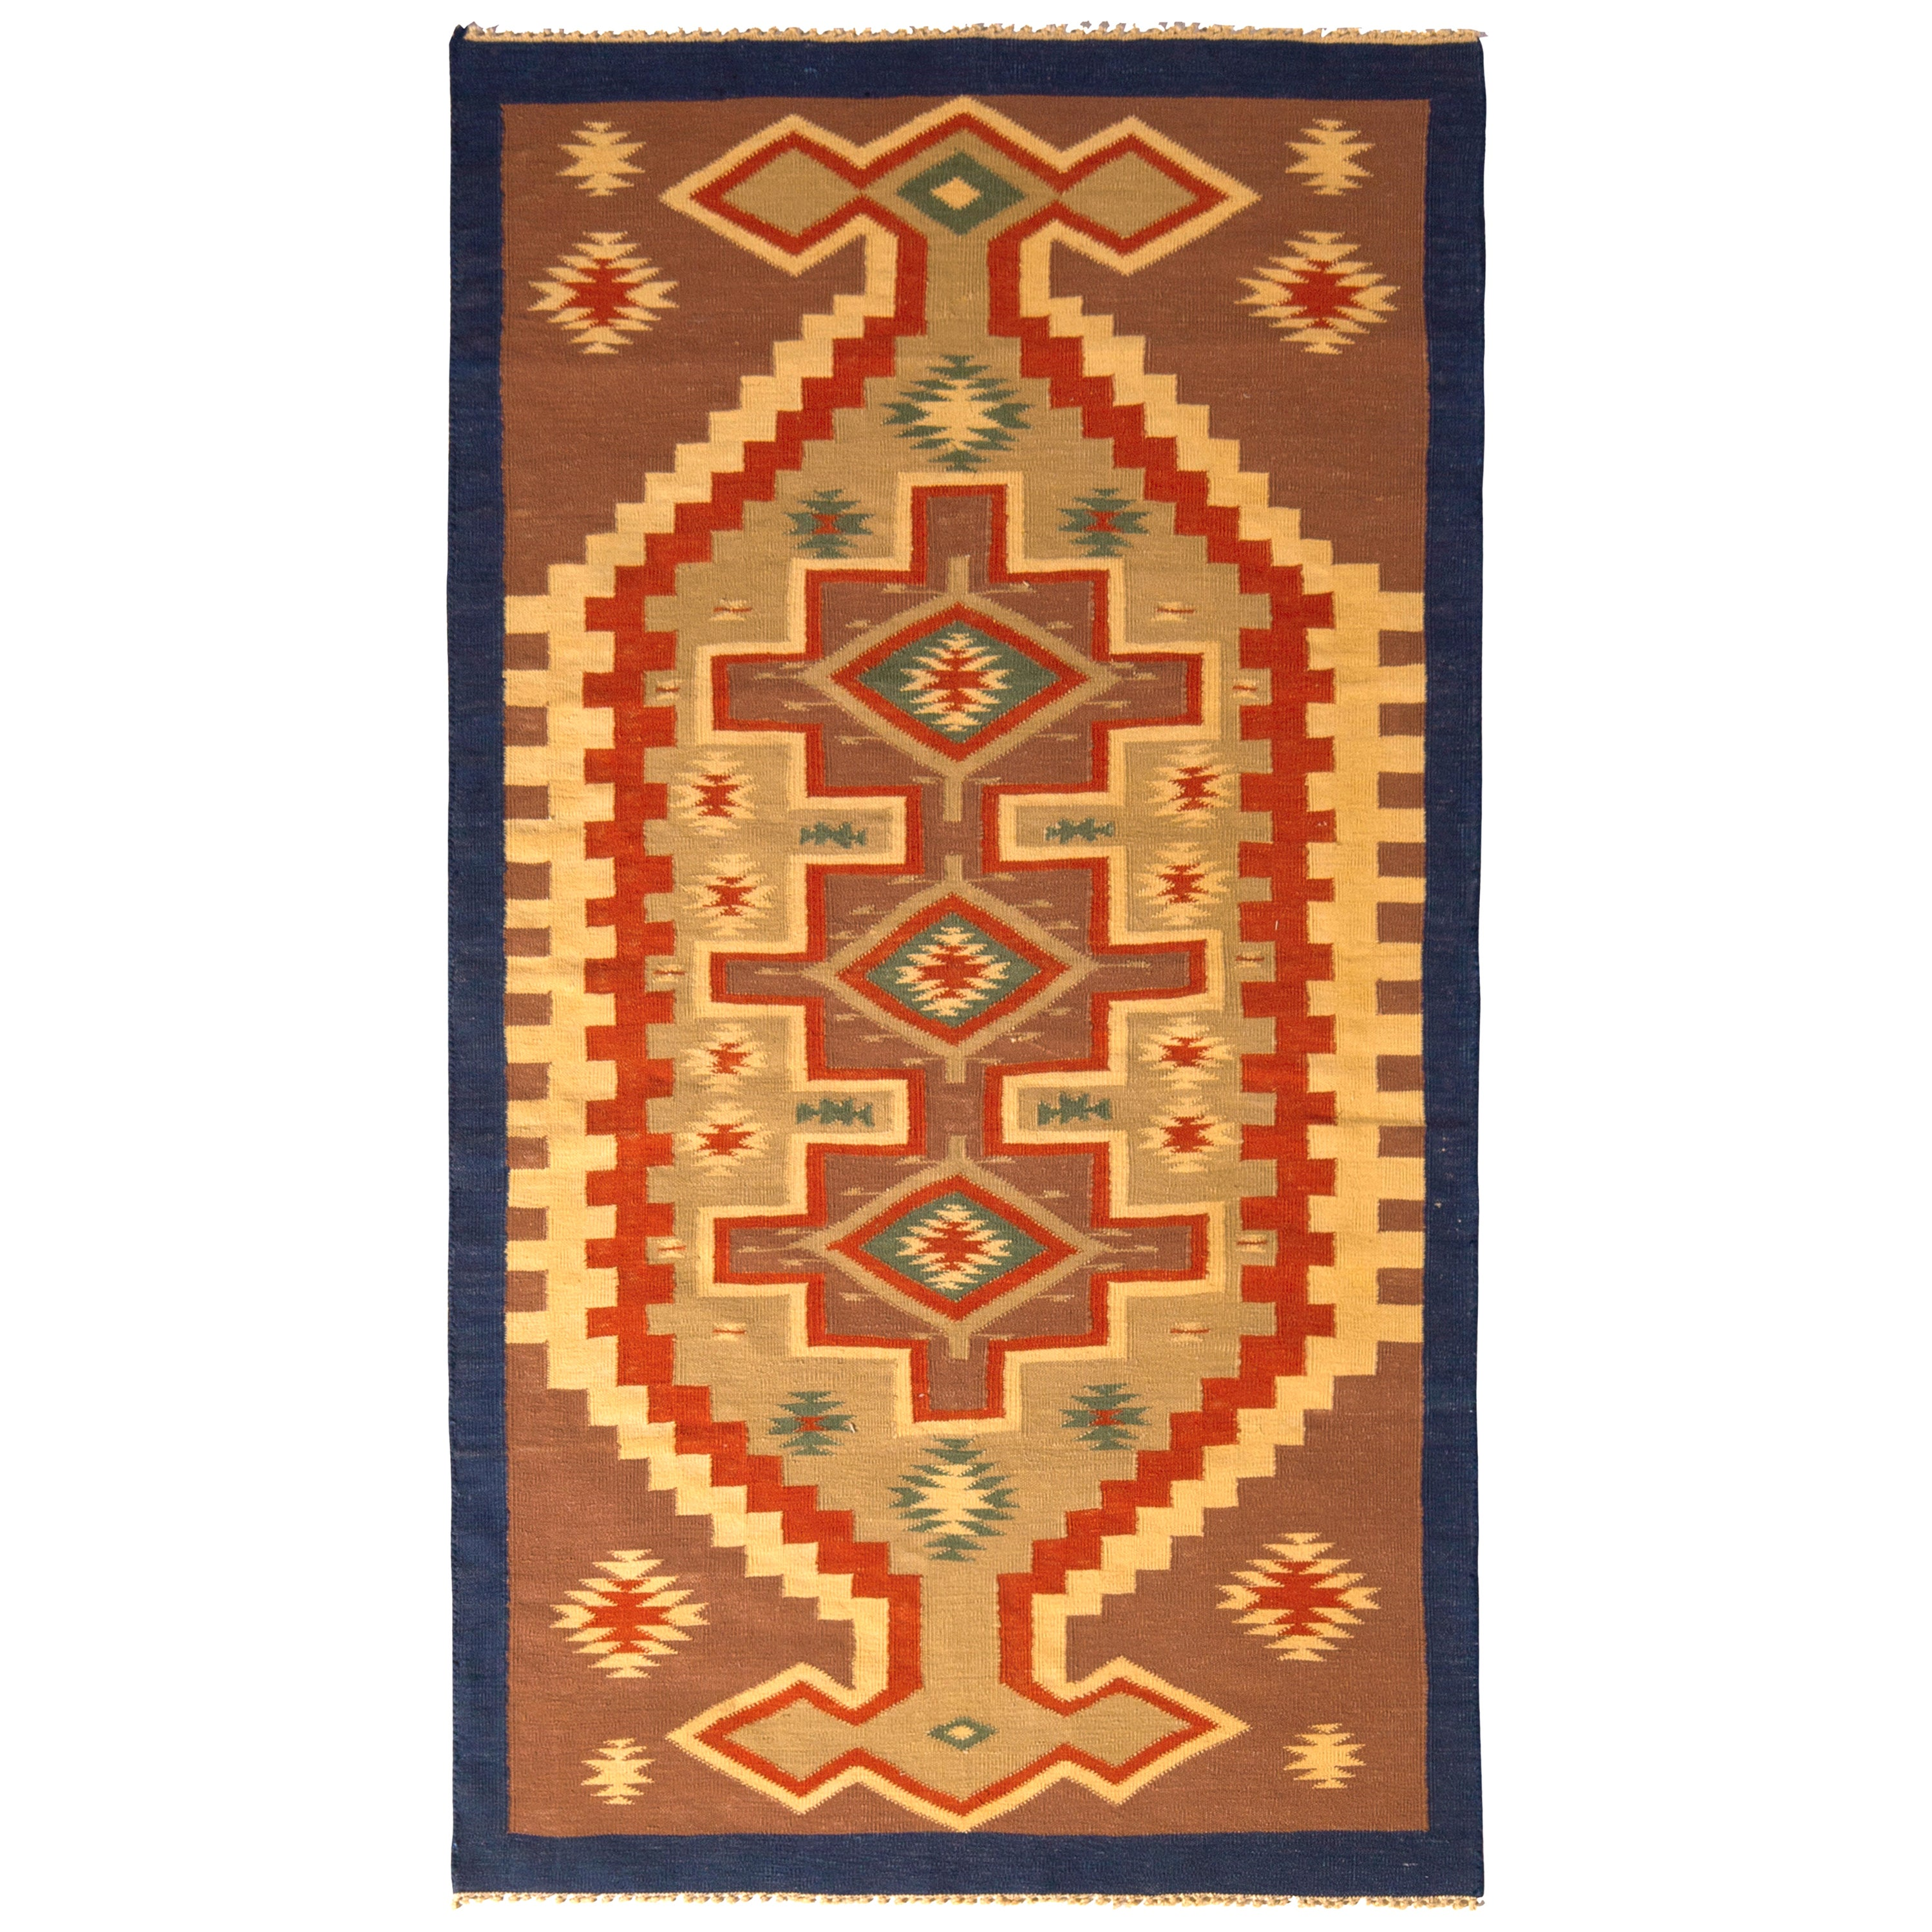 Contemporary Dhurrie Flat-Weave Rug, Beige Brown and Red Geometric Pattern